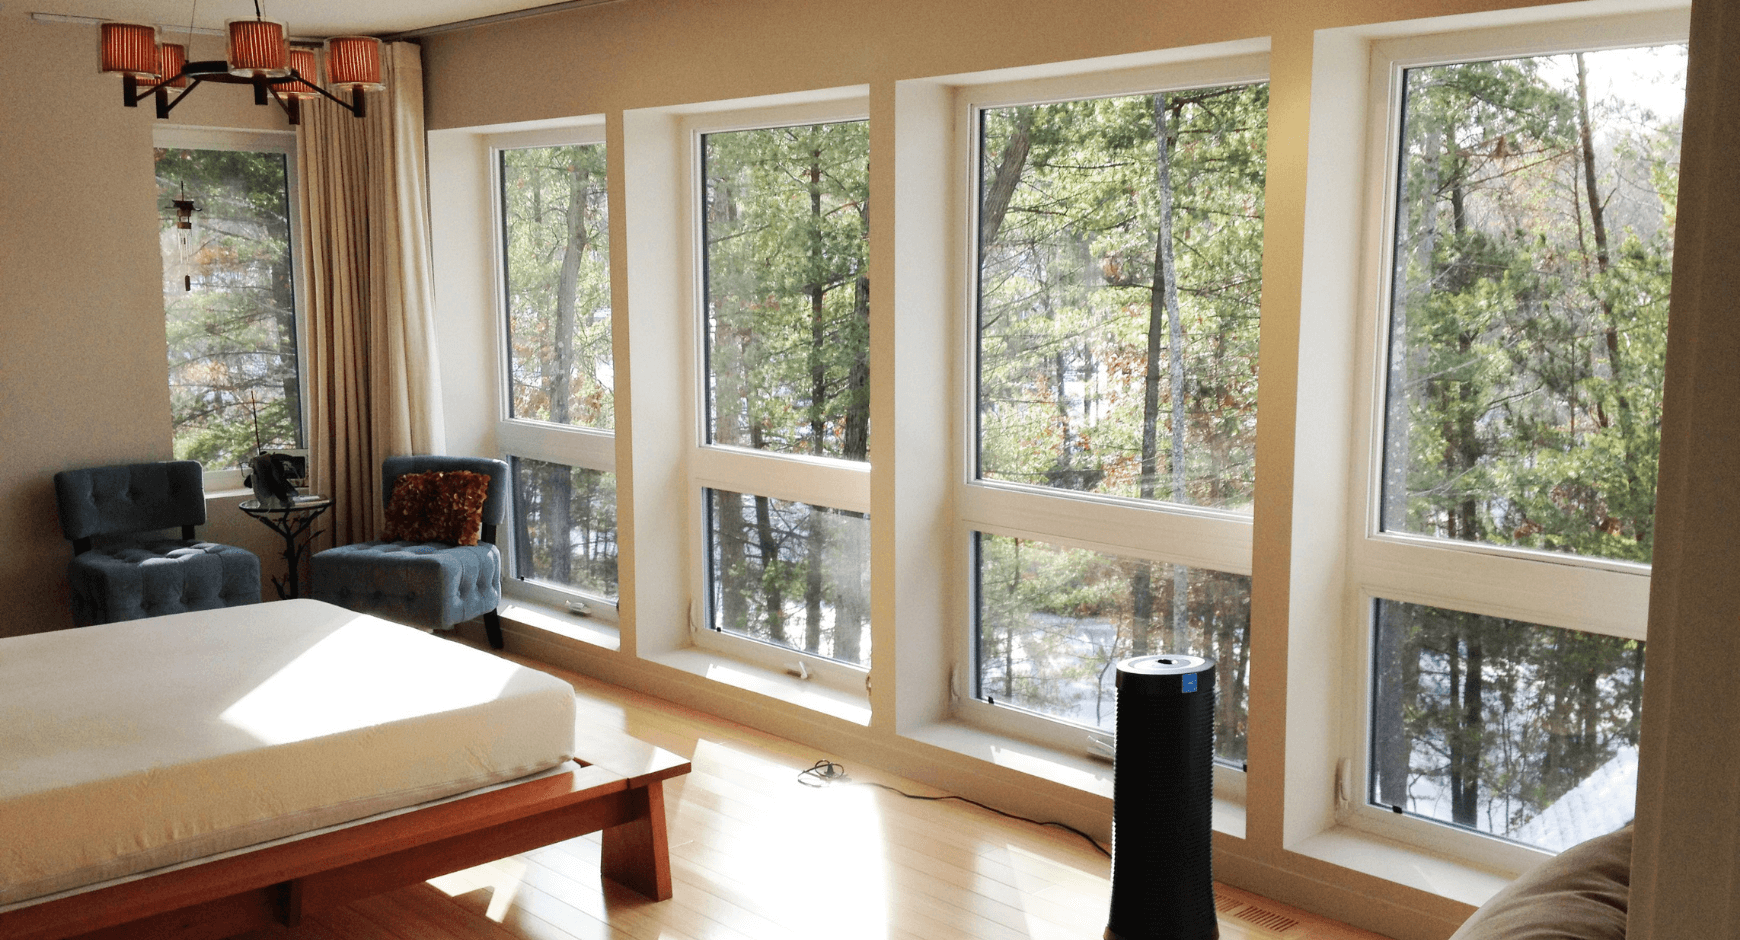 Image of a home with large windows looking out into the woods